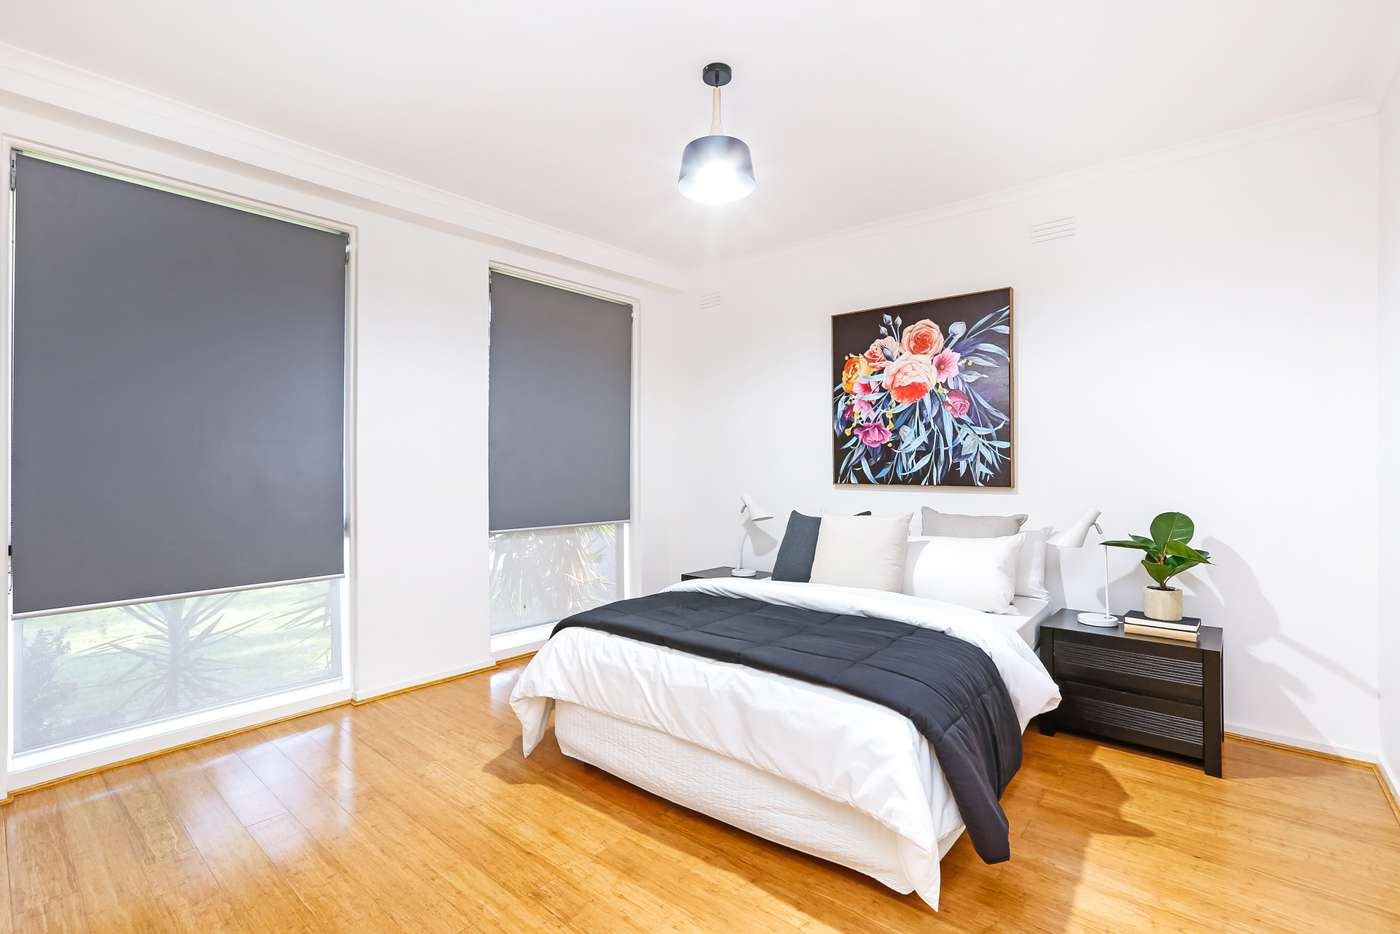 Sixth view of Homely unit listing, 1/64 Snell Grove, Oak Park VIC 3046